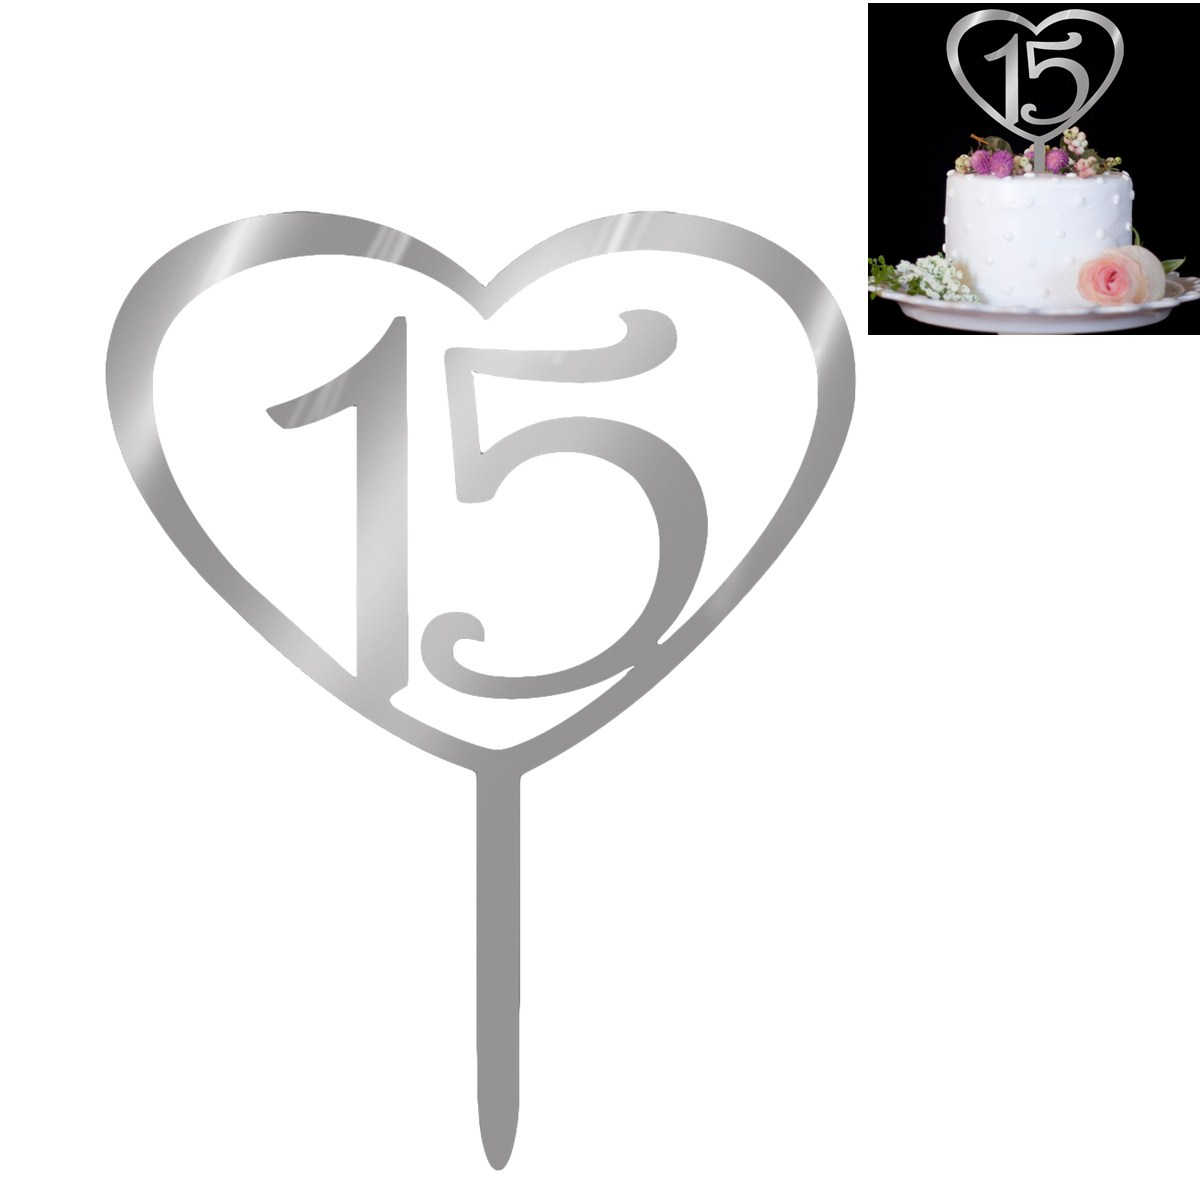 NICEXMAS Number 15 Cake Topper Love Heart Shape Acrylic Cupcake Toppers for 15th Birthday Wedding Anniversary Party Supplier